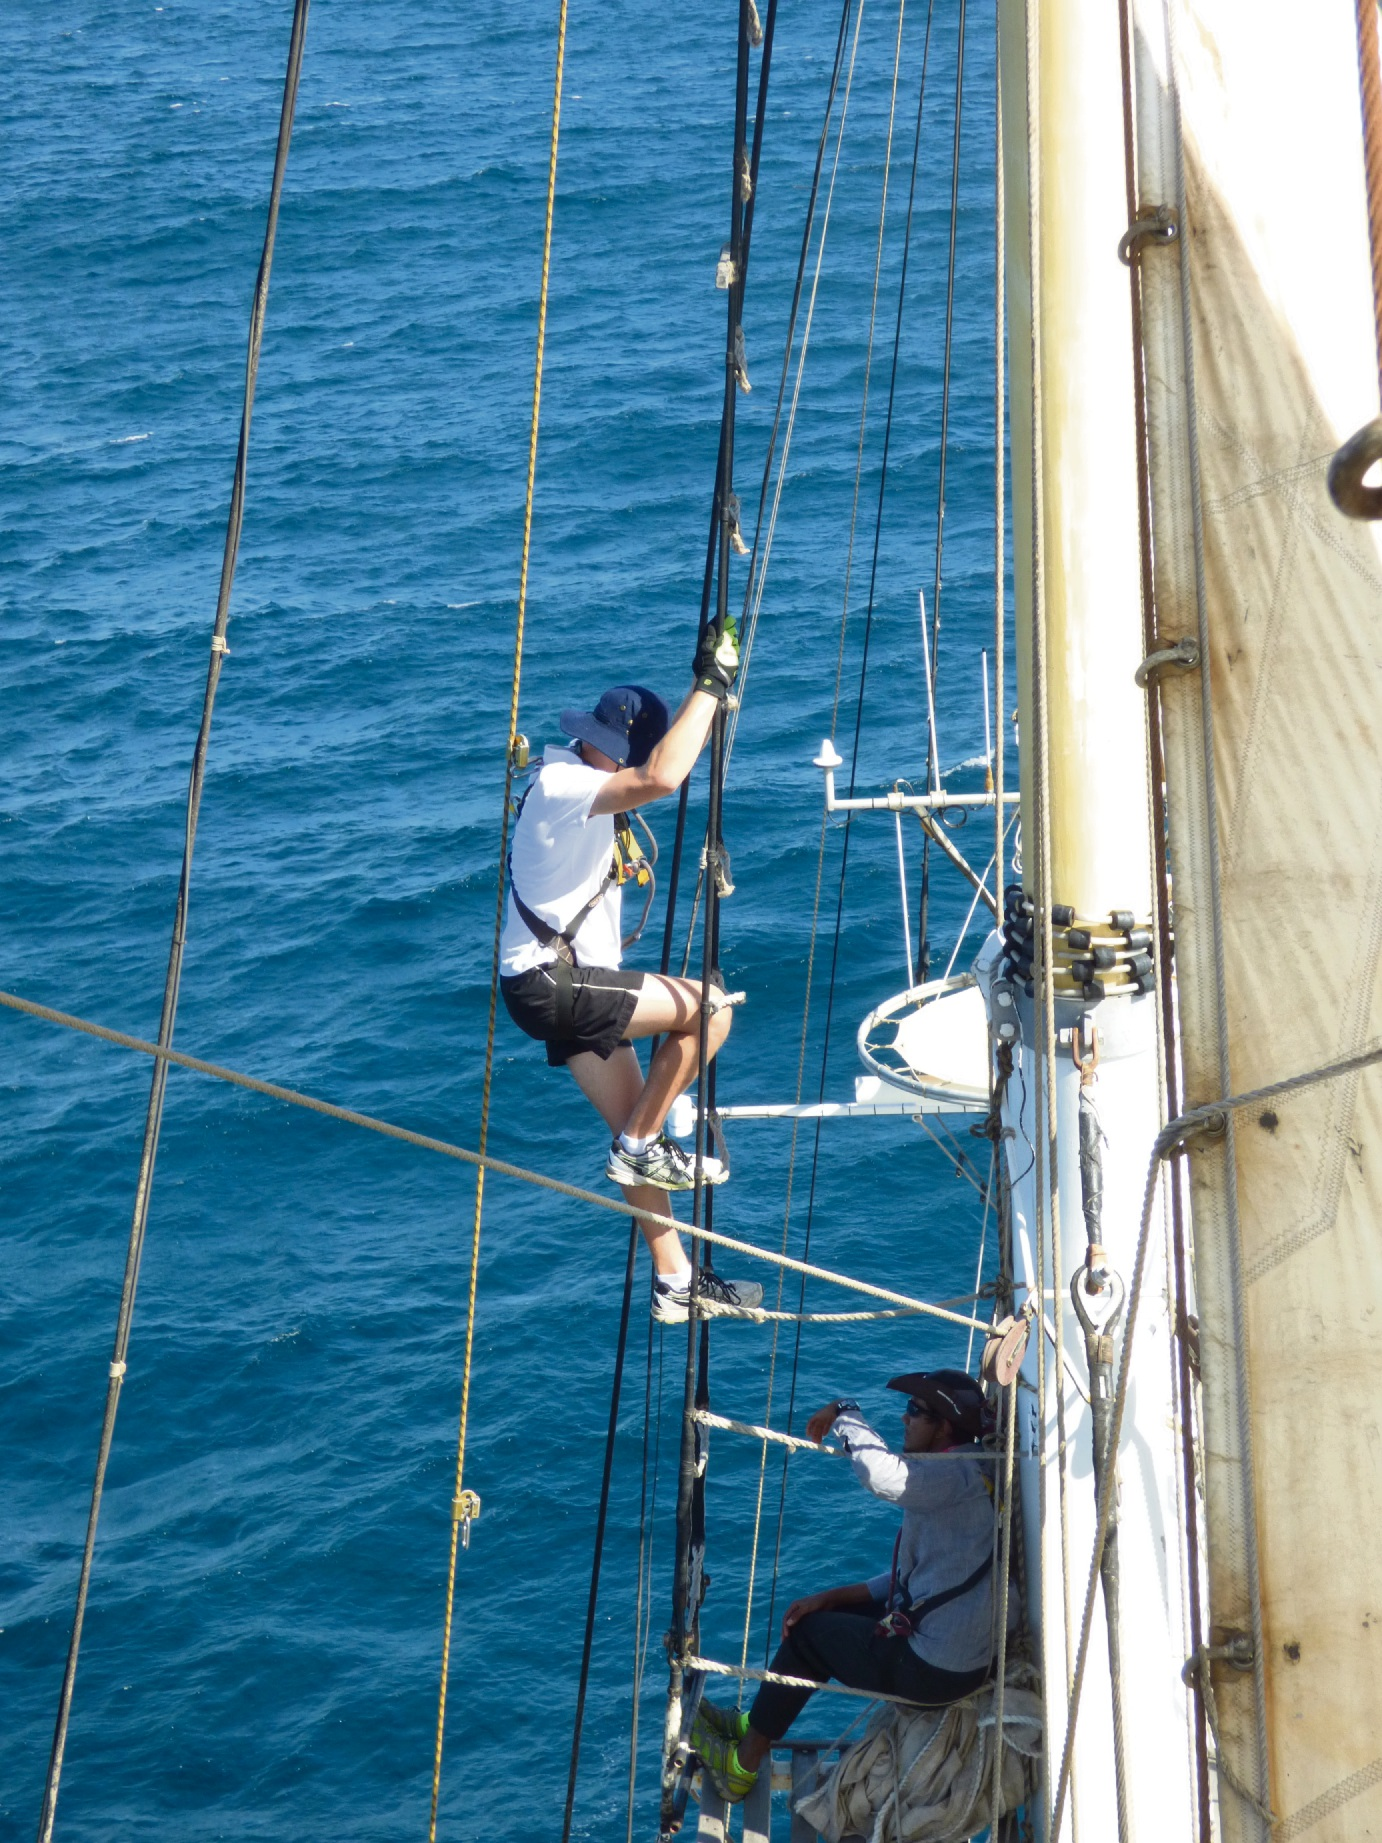 Rockingham SHS student gets adventure on the high seas aboard Leeuwin II